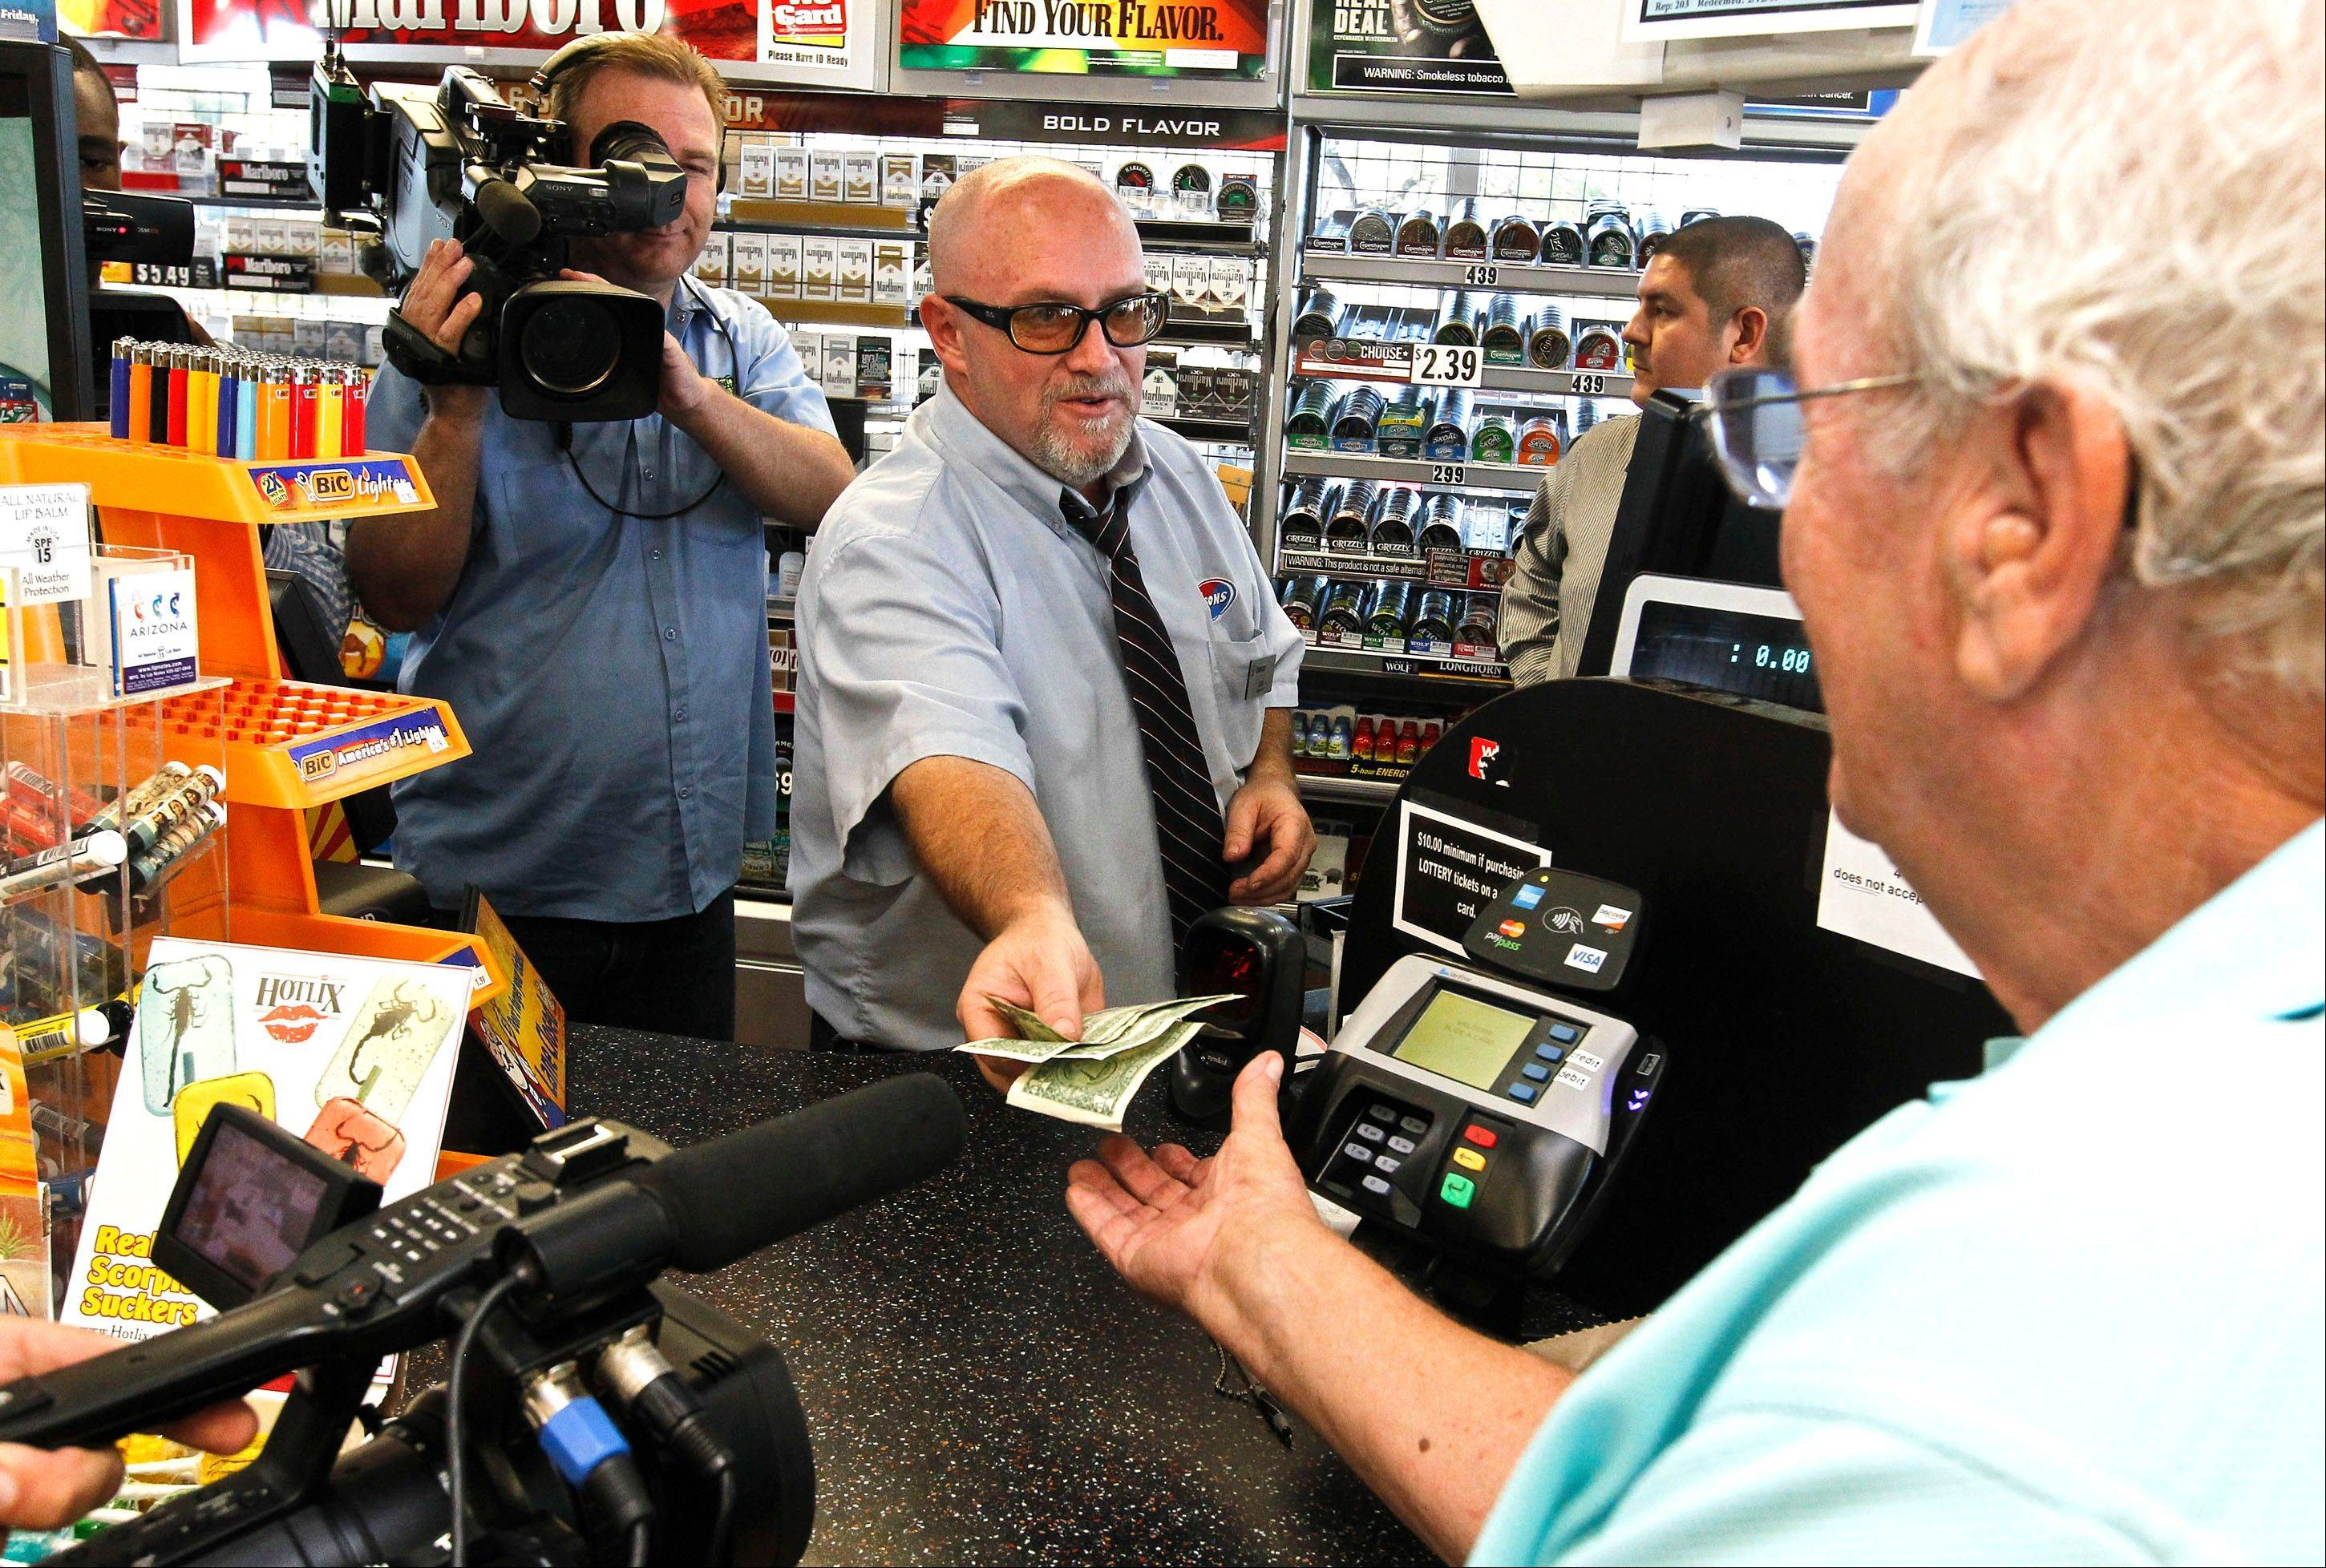 Television cameras roll as store manager Bob Chebat, middle, hands over Wes Prinzen's, right, modest $4 winnings, at a 4 Sons Food Store where one of the winning tickets in the $579.9 million Powerball jackpot was purchased in Fountain Hills, Ariz. When two winning tickets for a record Powerball jackpot were claimed last month, the world focused on the winners. One, from Missouri, showed up at the news conference, while the other, in Arizona, chose to remain anonymous. Releasing information on the lottery winners reflects a broader debate playing out in state Legislatures and lottery offices nationwide: Should the winners' names be made public?